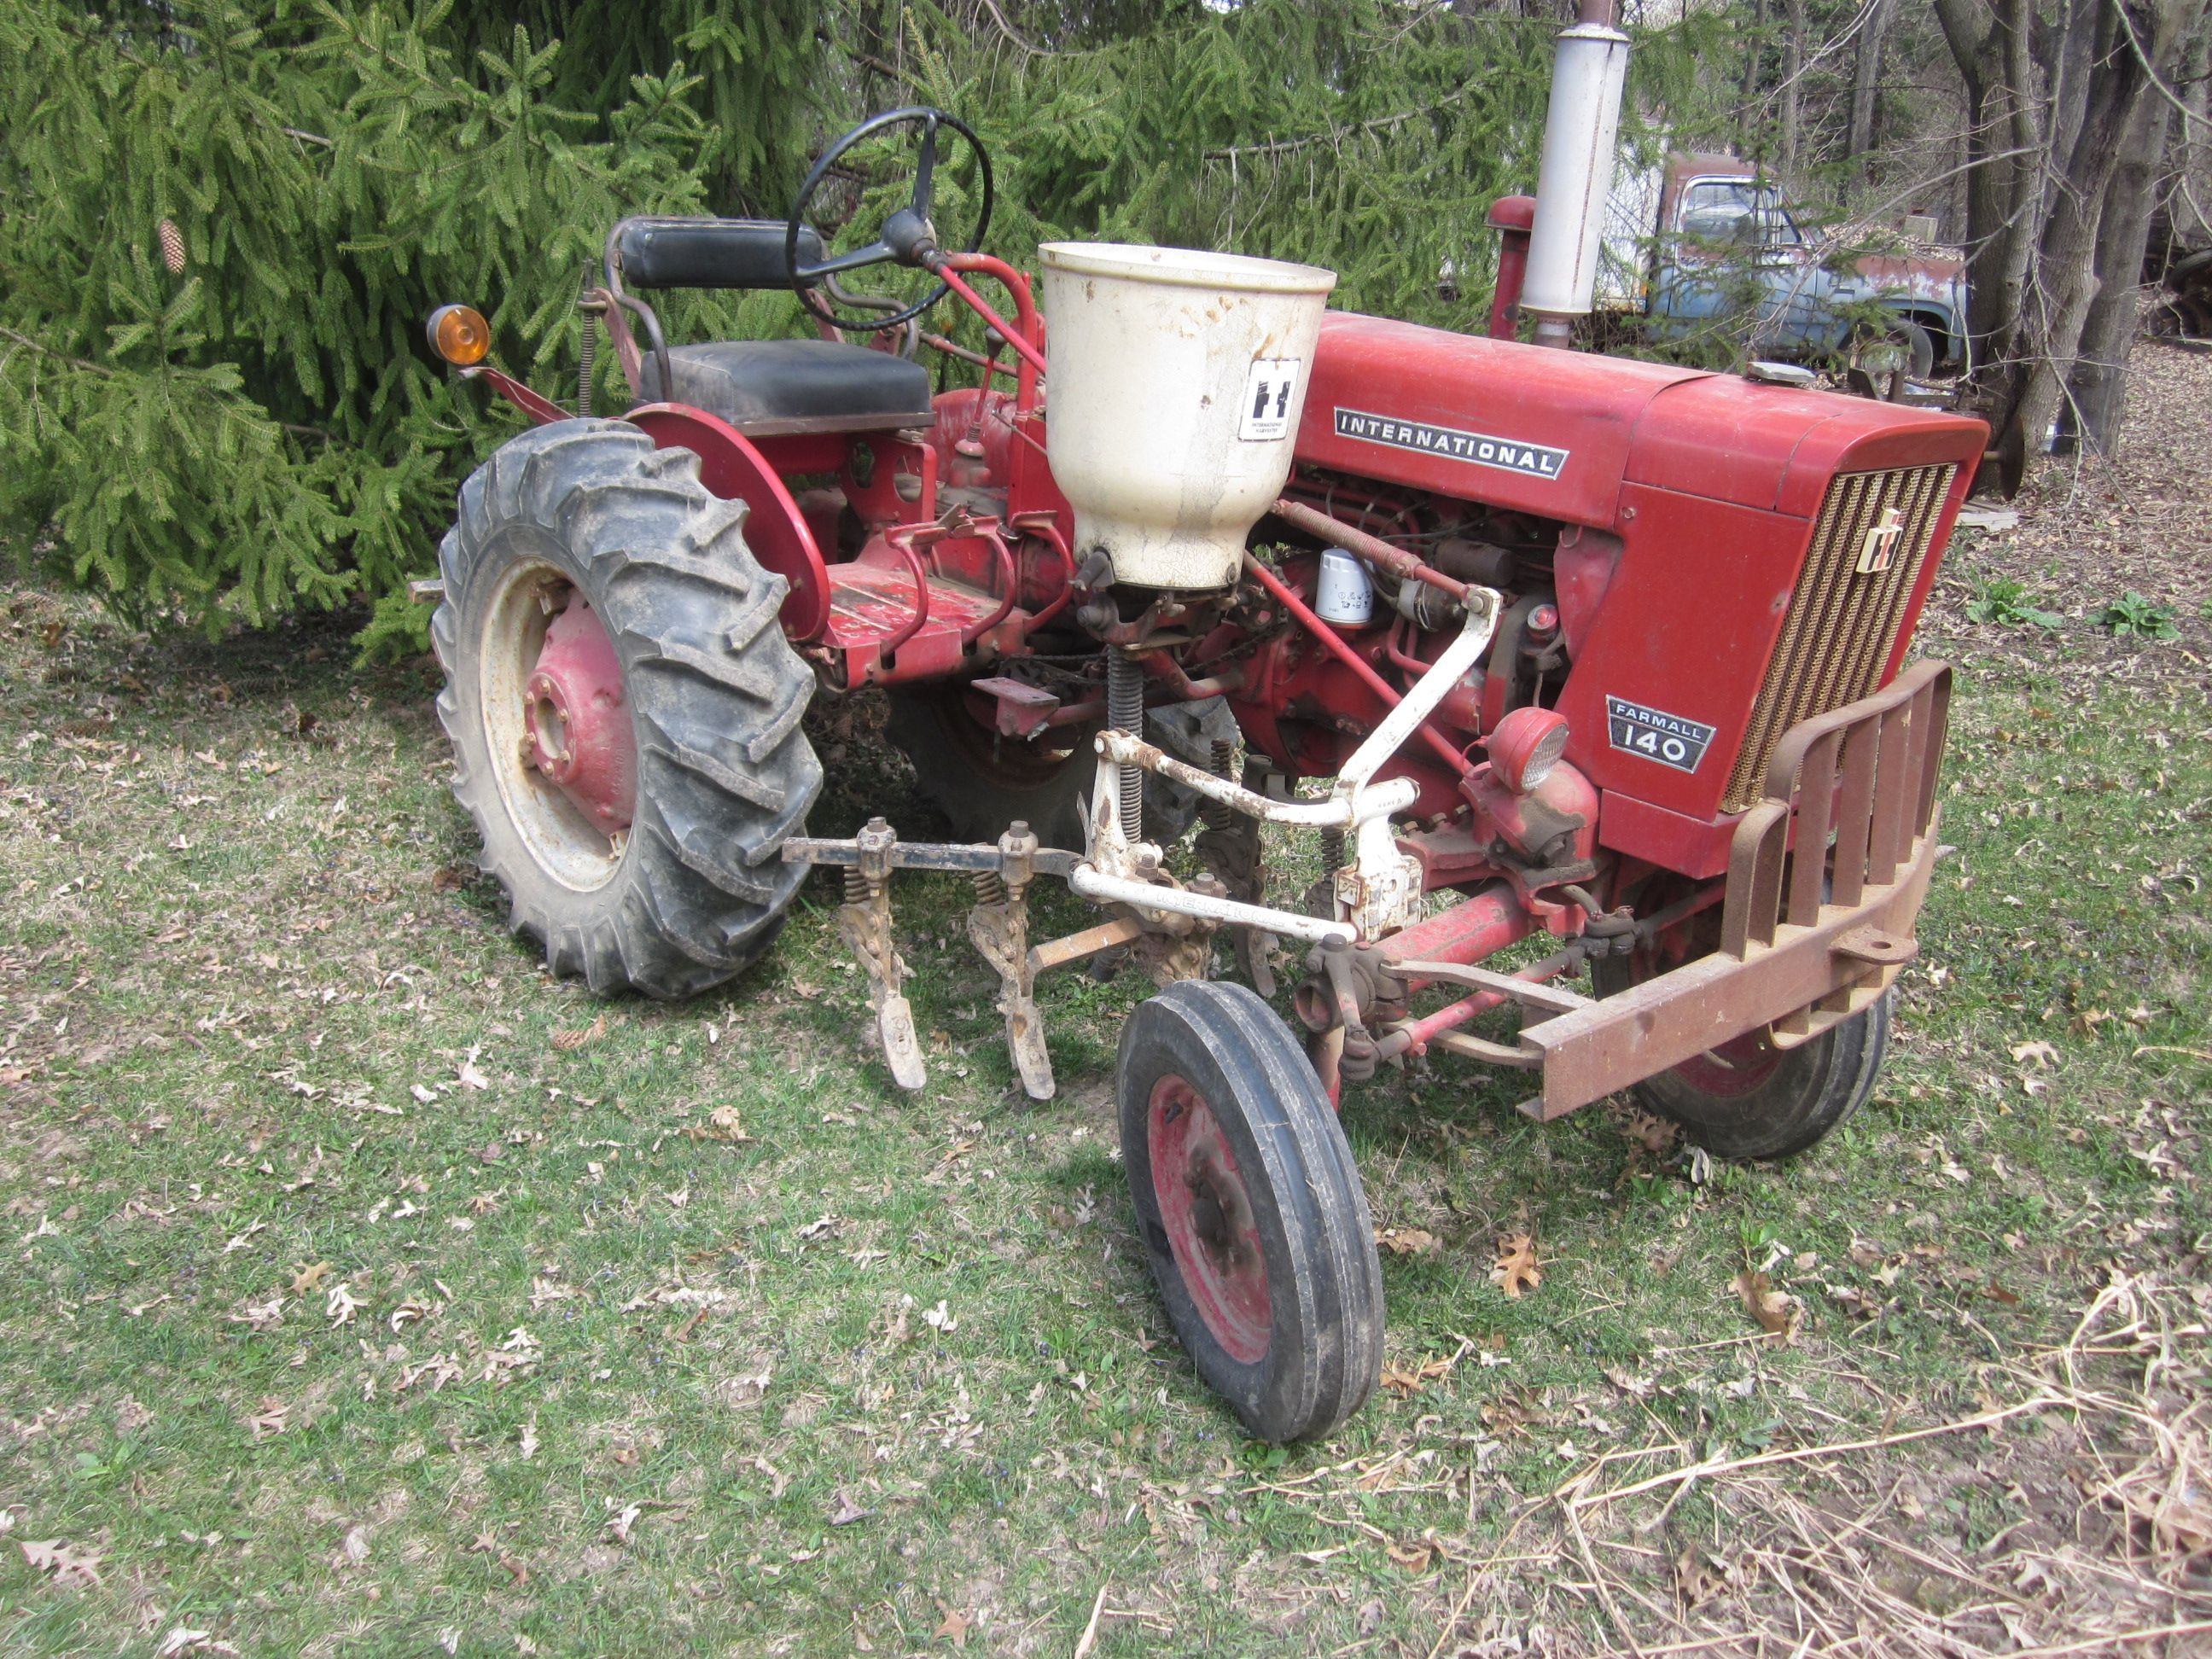 This Configuration Is The Same As Basic Cultivating Tractor Except It Also Has A Fertilizer Side Dresser Most Attachments Were On One